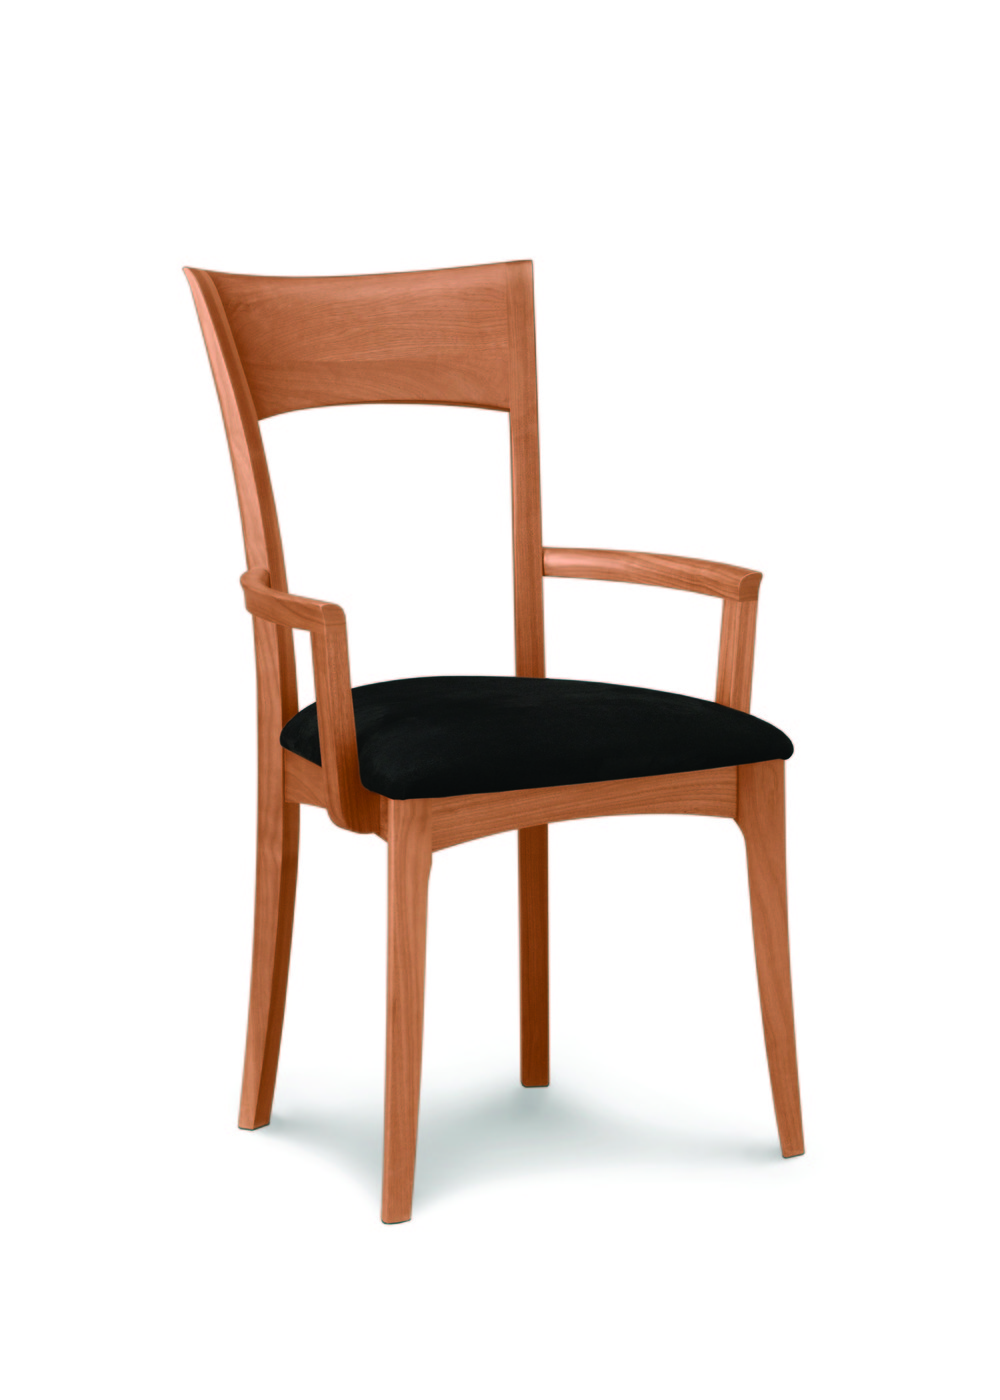 Copeland Furniture - Ingrid Arm Chair